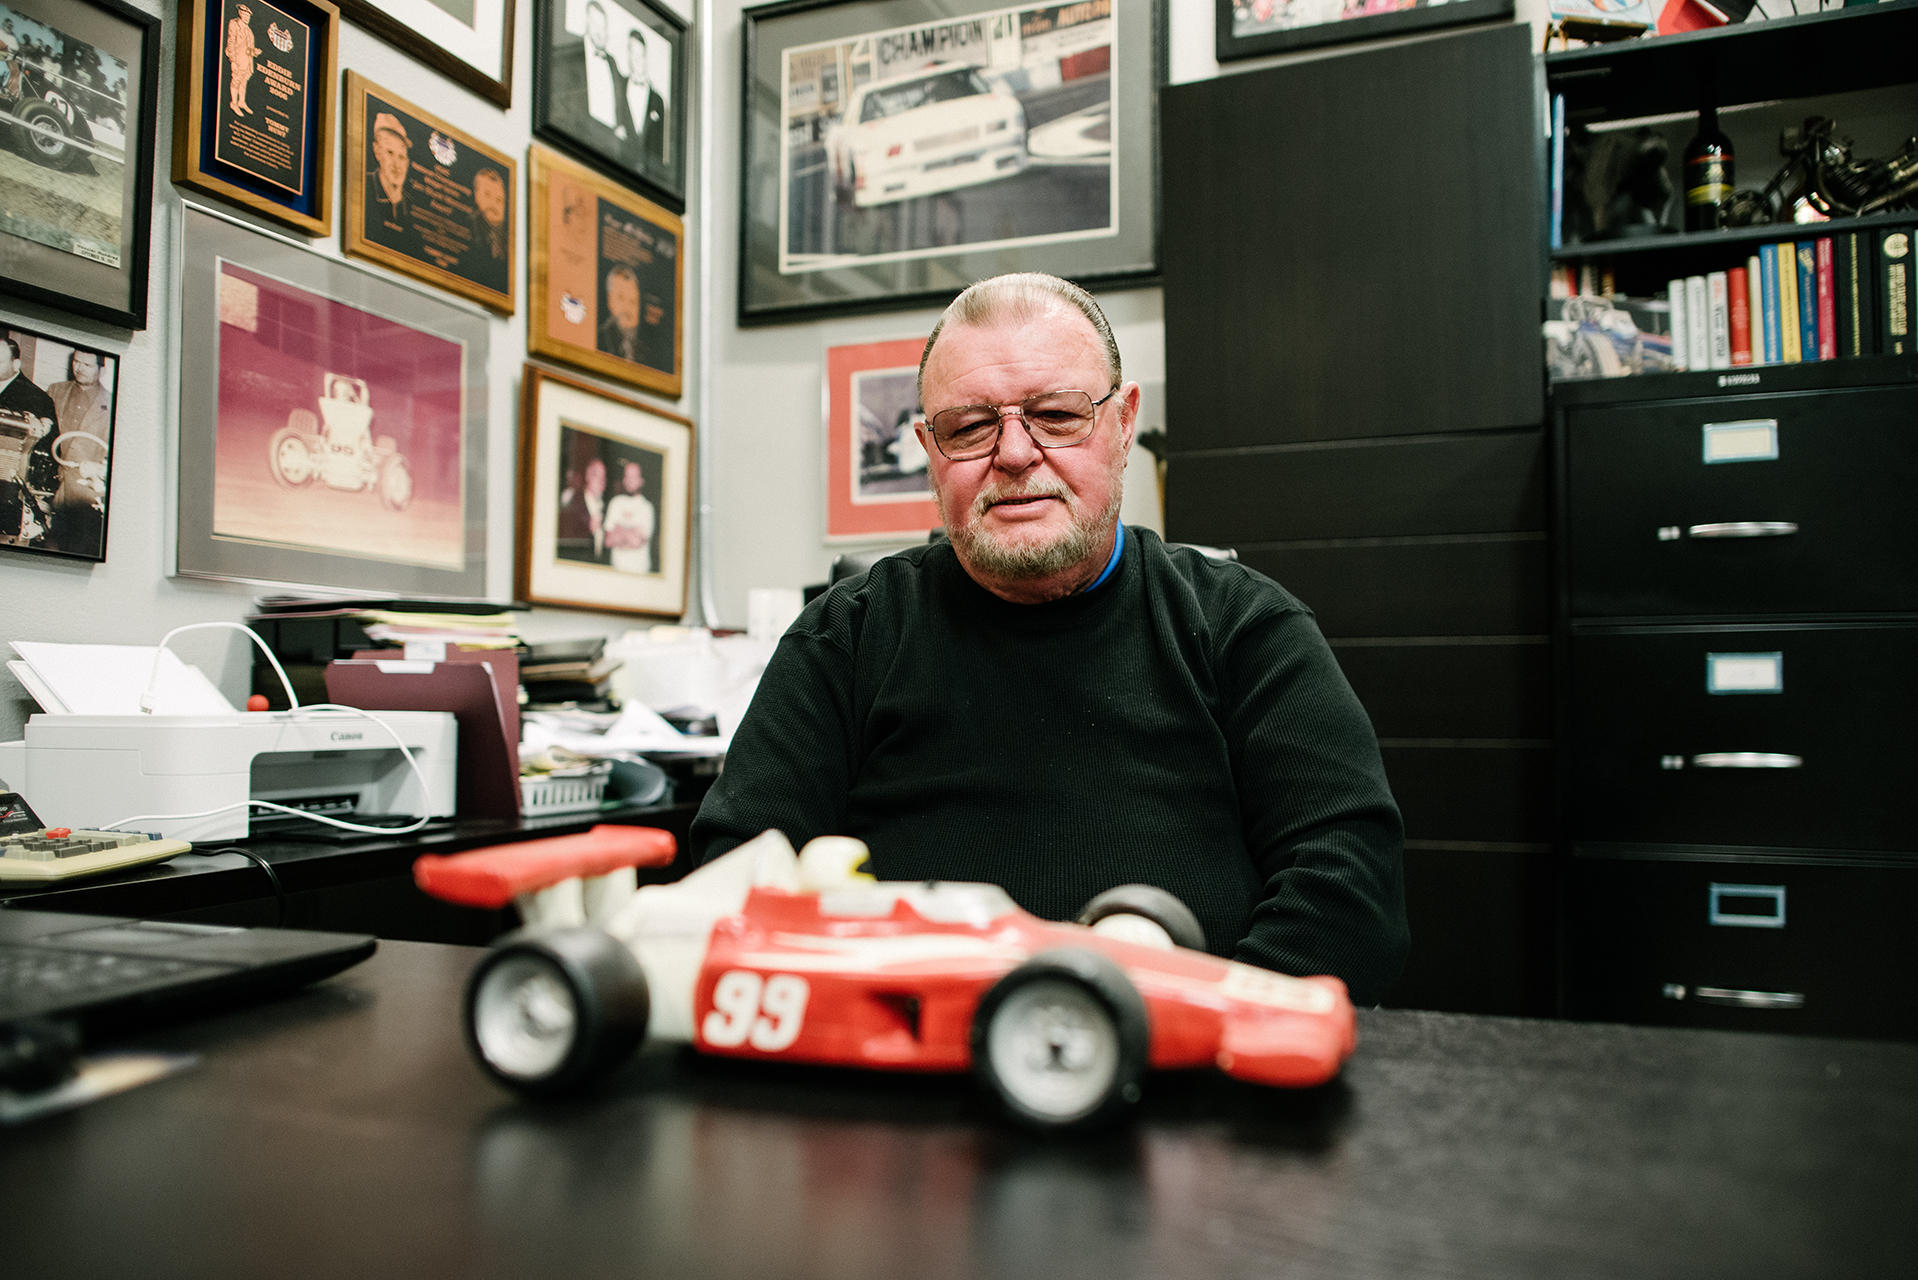 Childhood memories: Tommy Hunt admires an Indy Car model that he built for his dad, Joe Hunt.